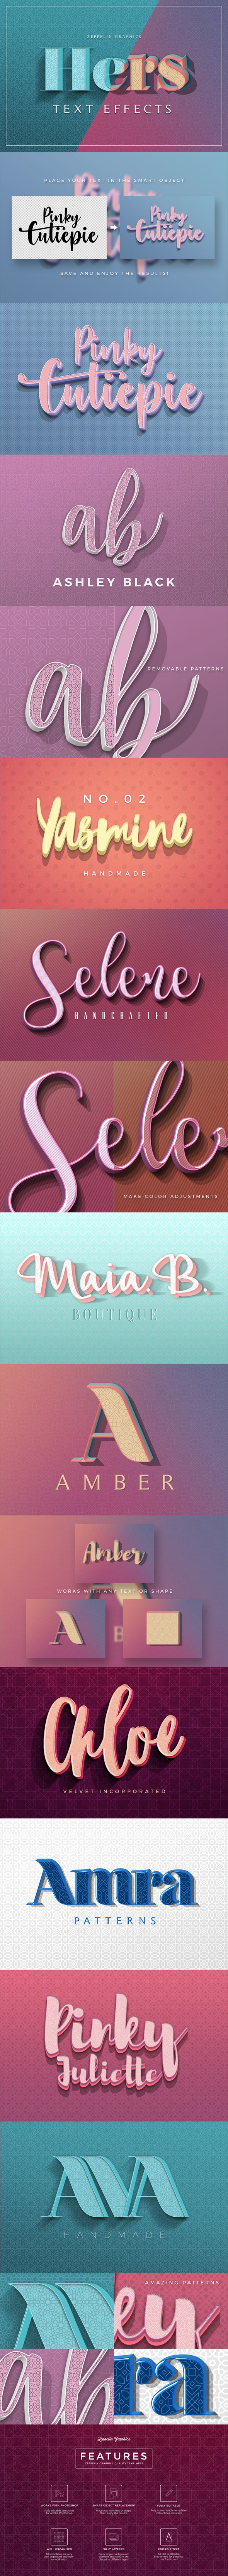 Colorful 3D Text Effects - Text Effects Actions